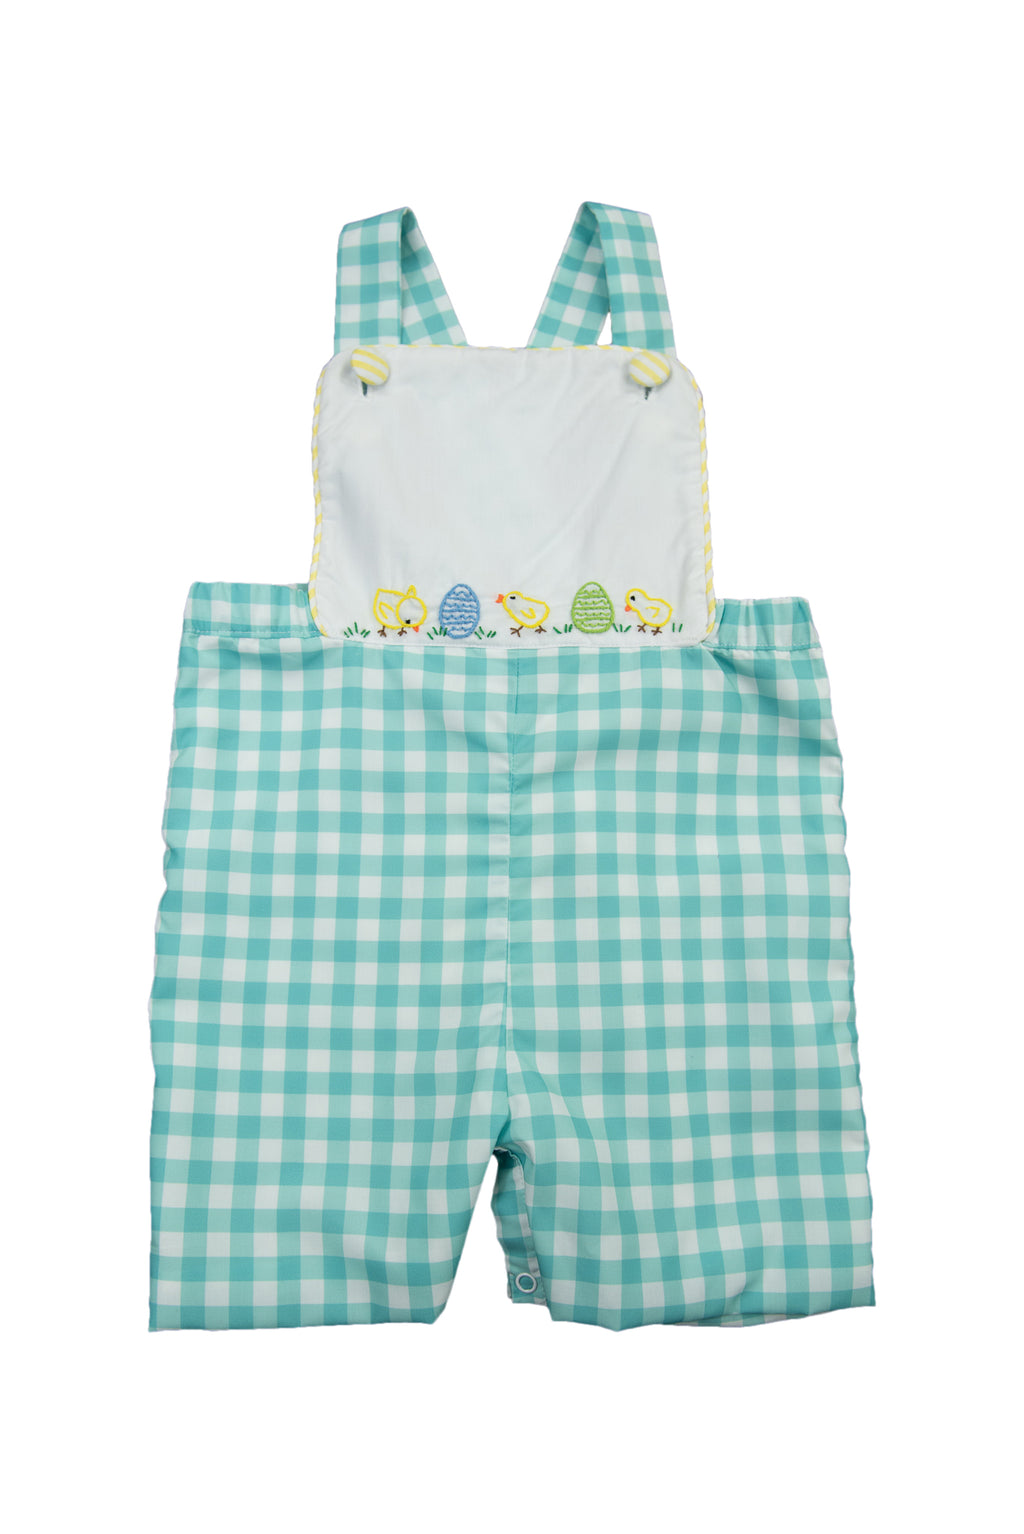 Boys Hand Embroidered Chicks Overall